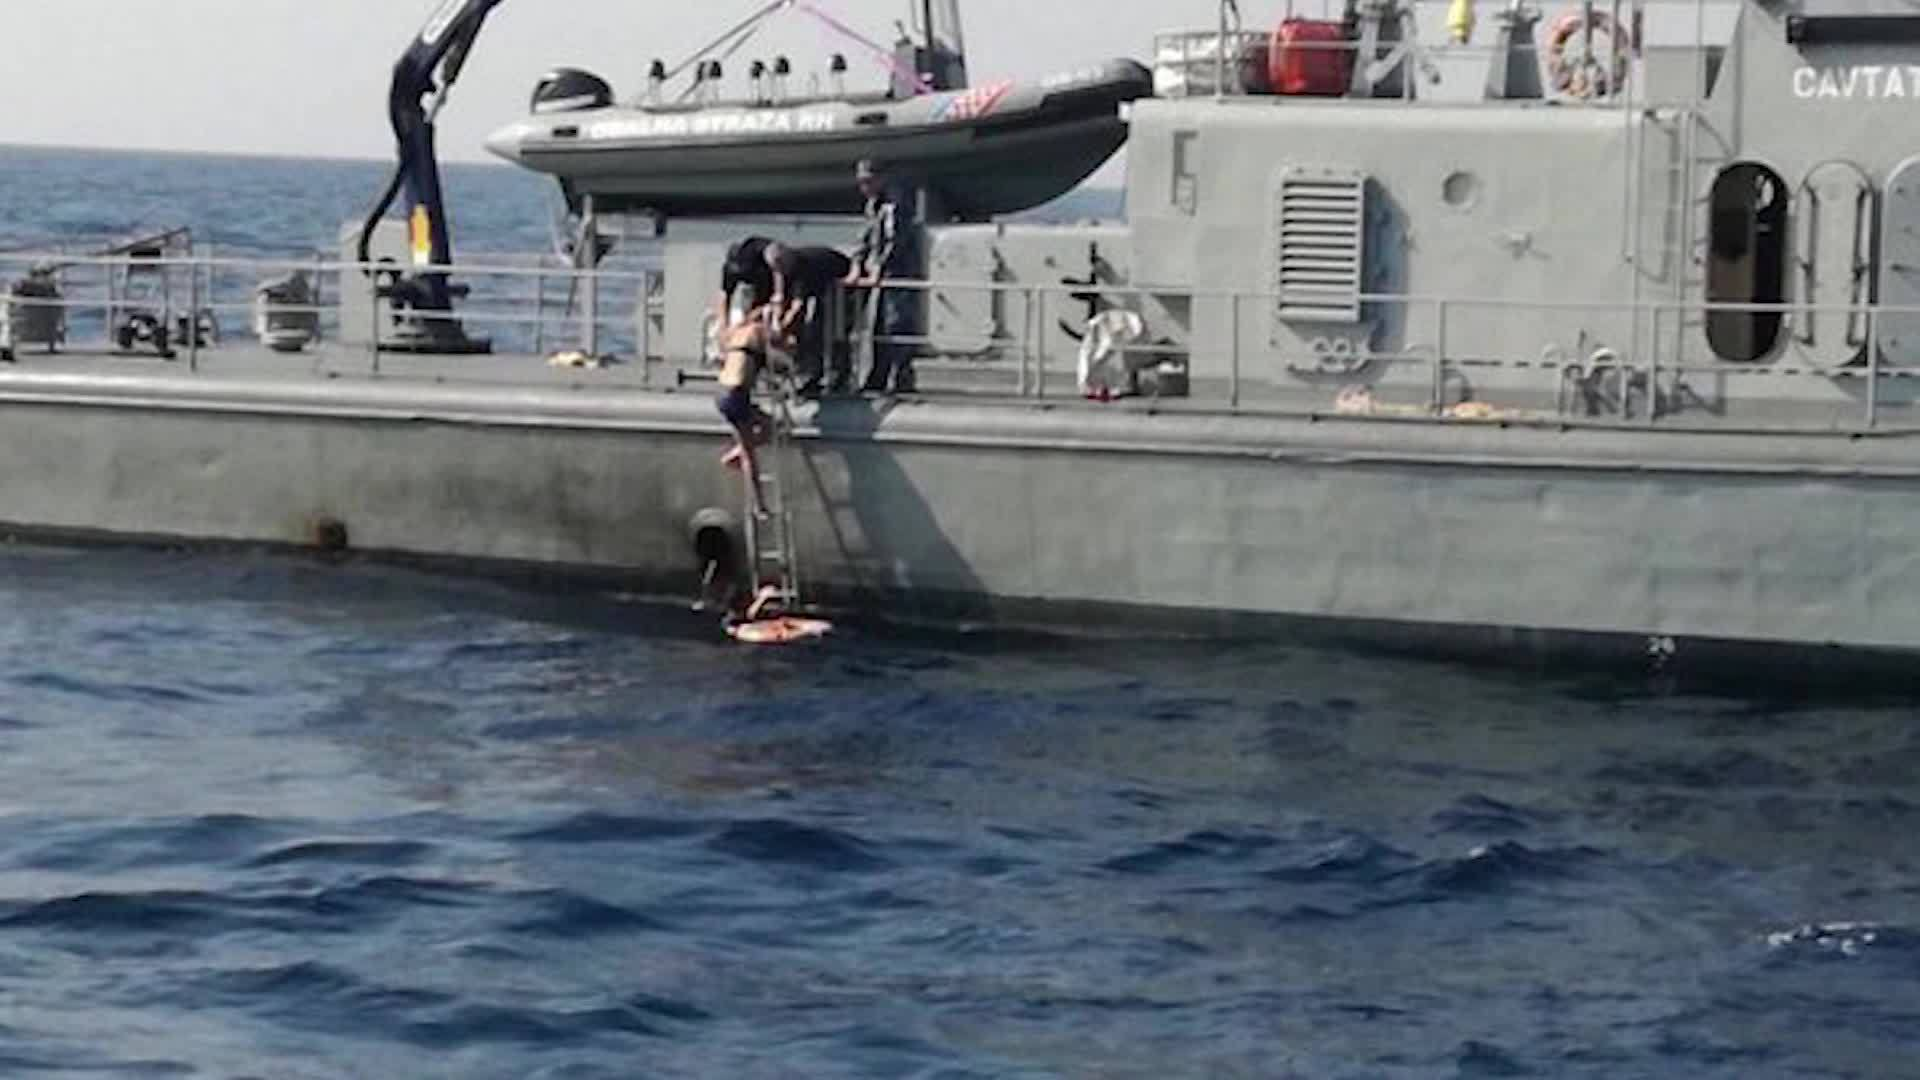 Woman who fell off cruise ship rescued after treading water for 10 hours